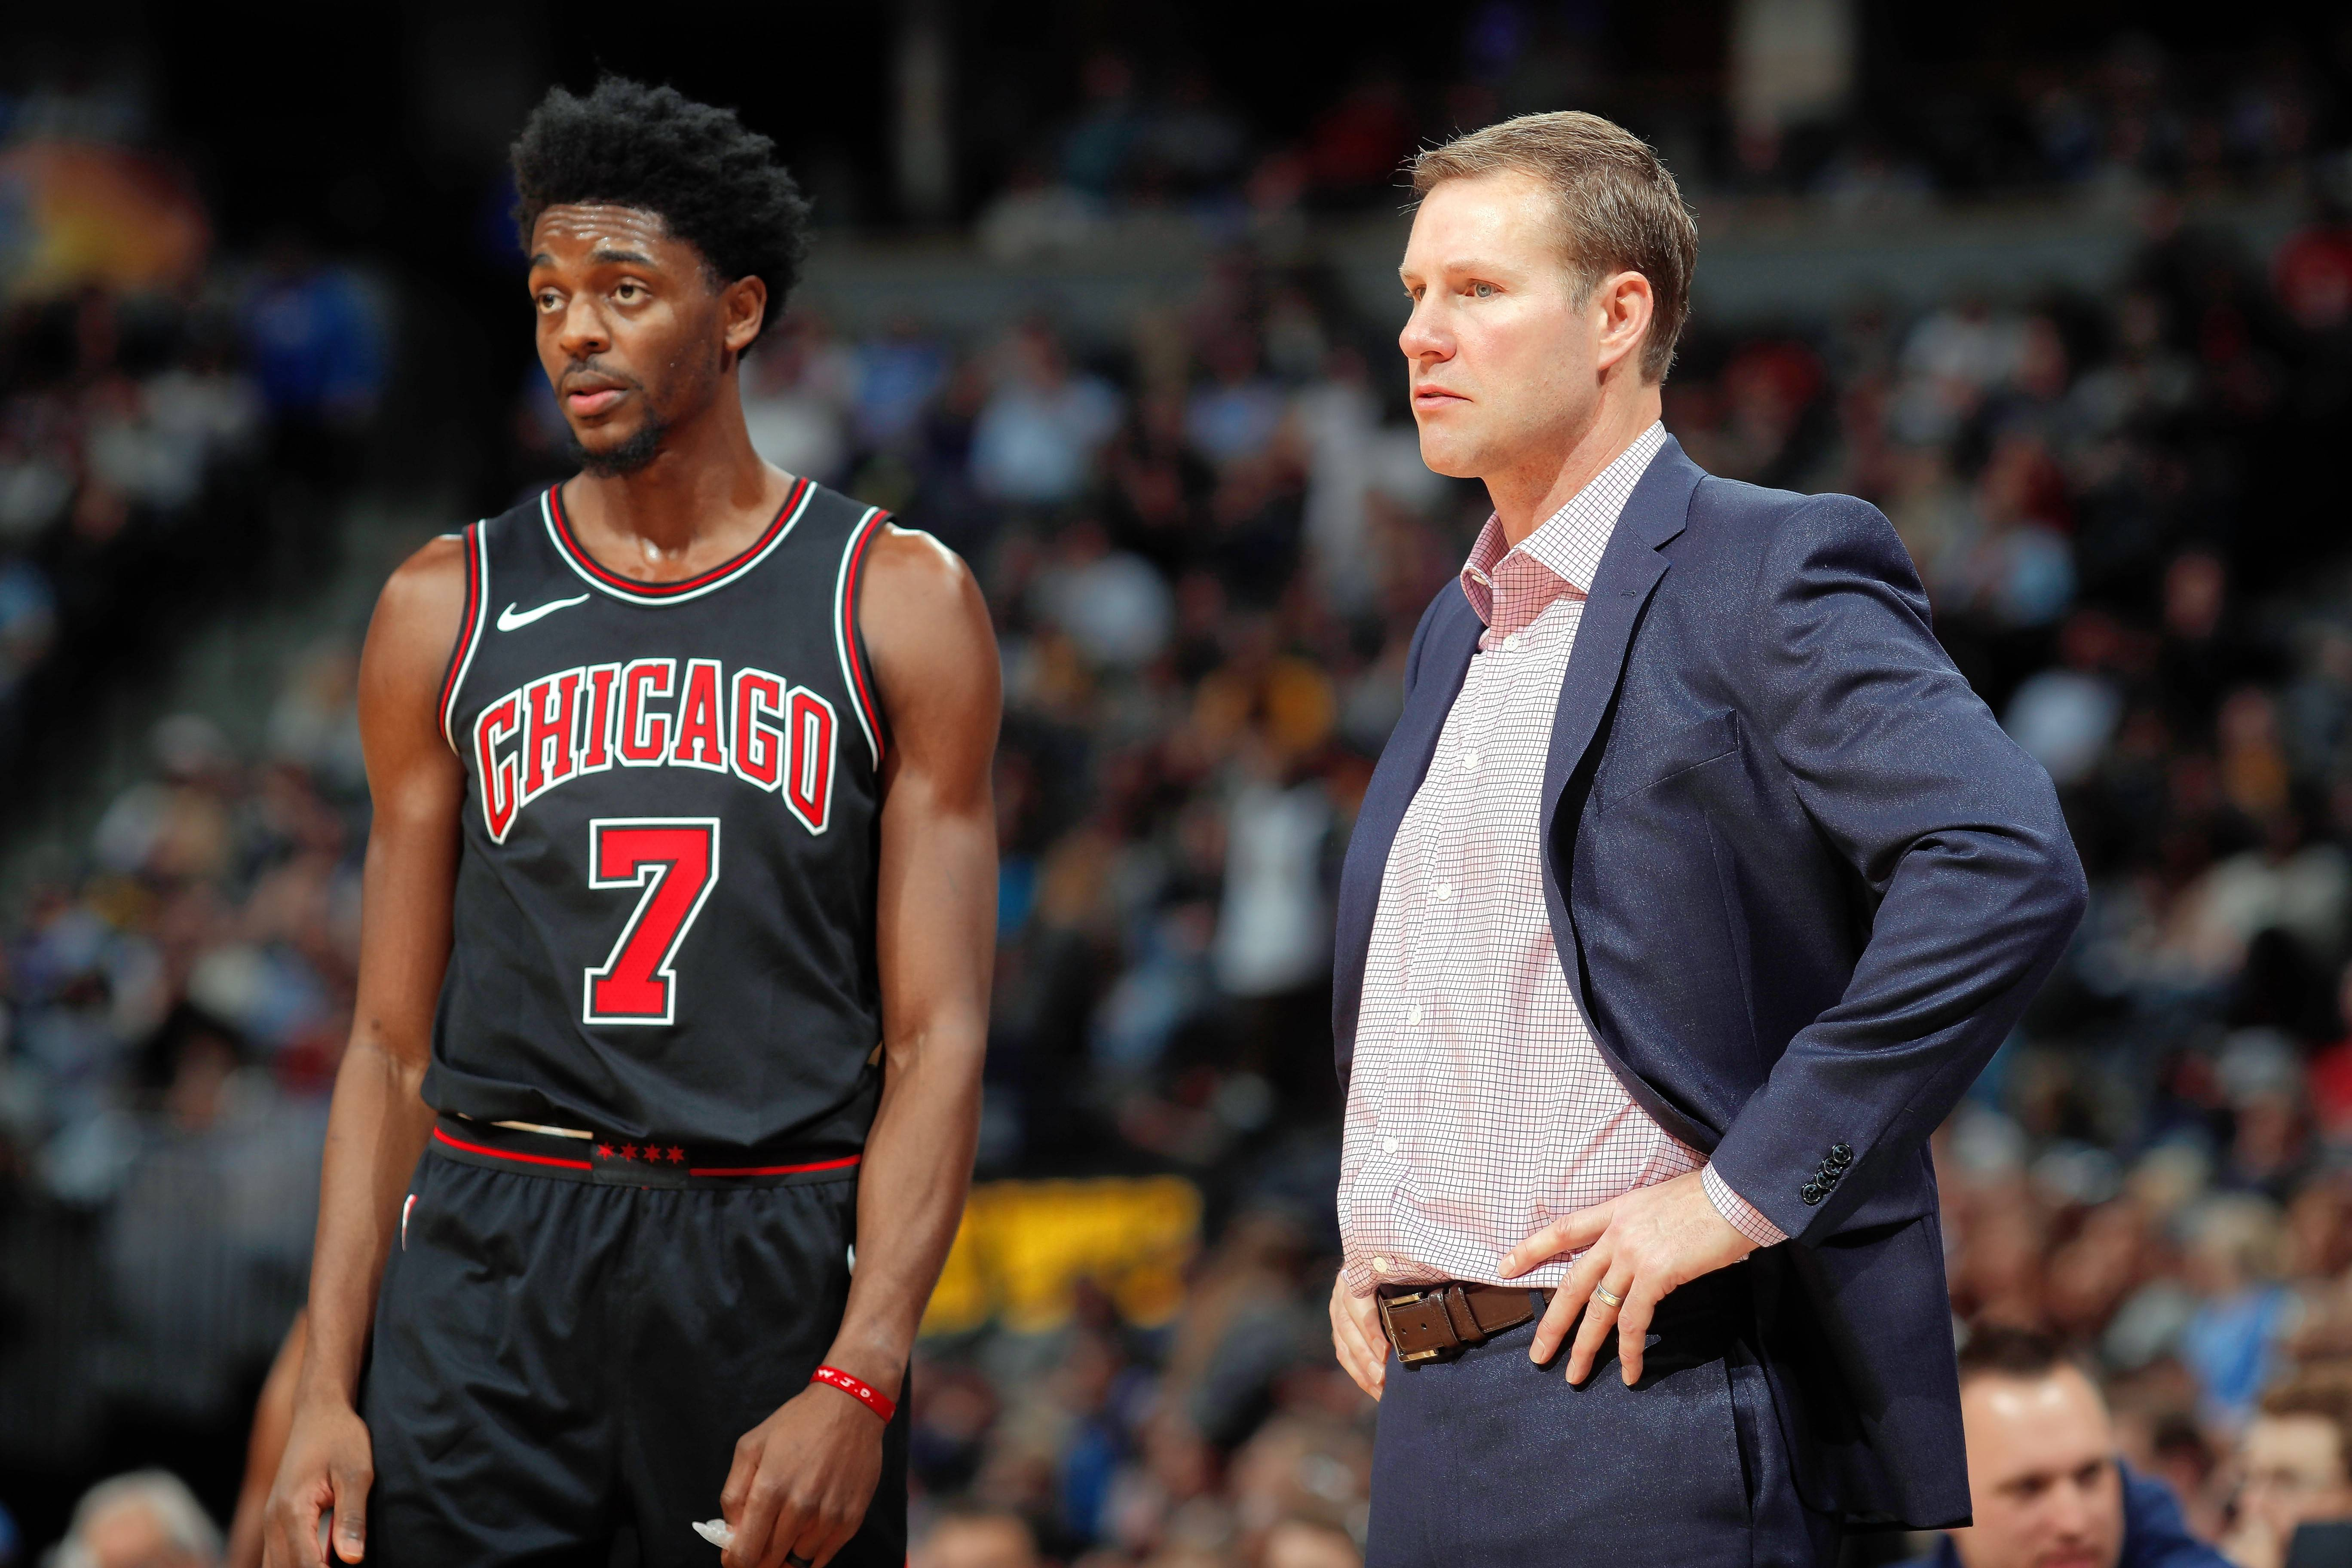 Chicago Bulls guard Justin Holiday, left, tried to take the blame for Thursday's tough loss to Denver, but coach Fred Hoiberg disagreed.